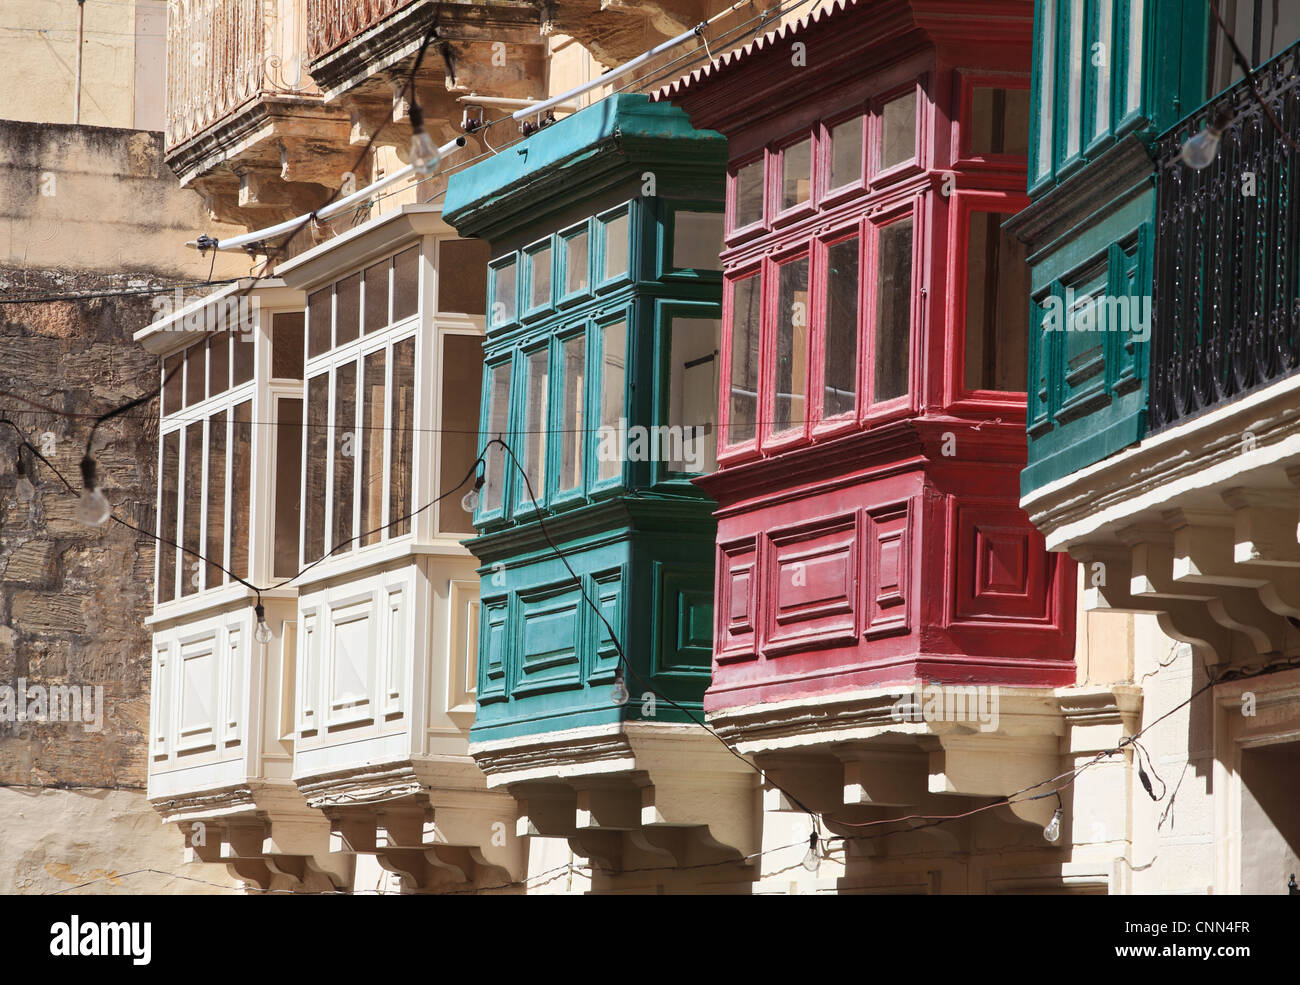 A row of painted traditional bay windows or covered balconies Rabat ,Malta, Europe - Stock Image